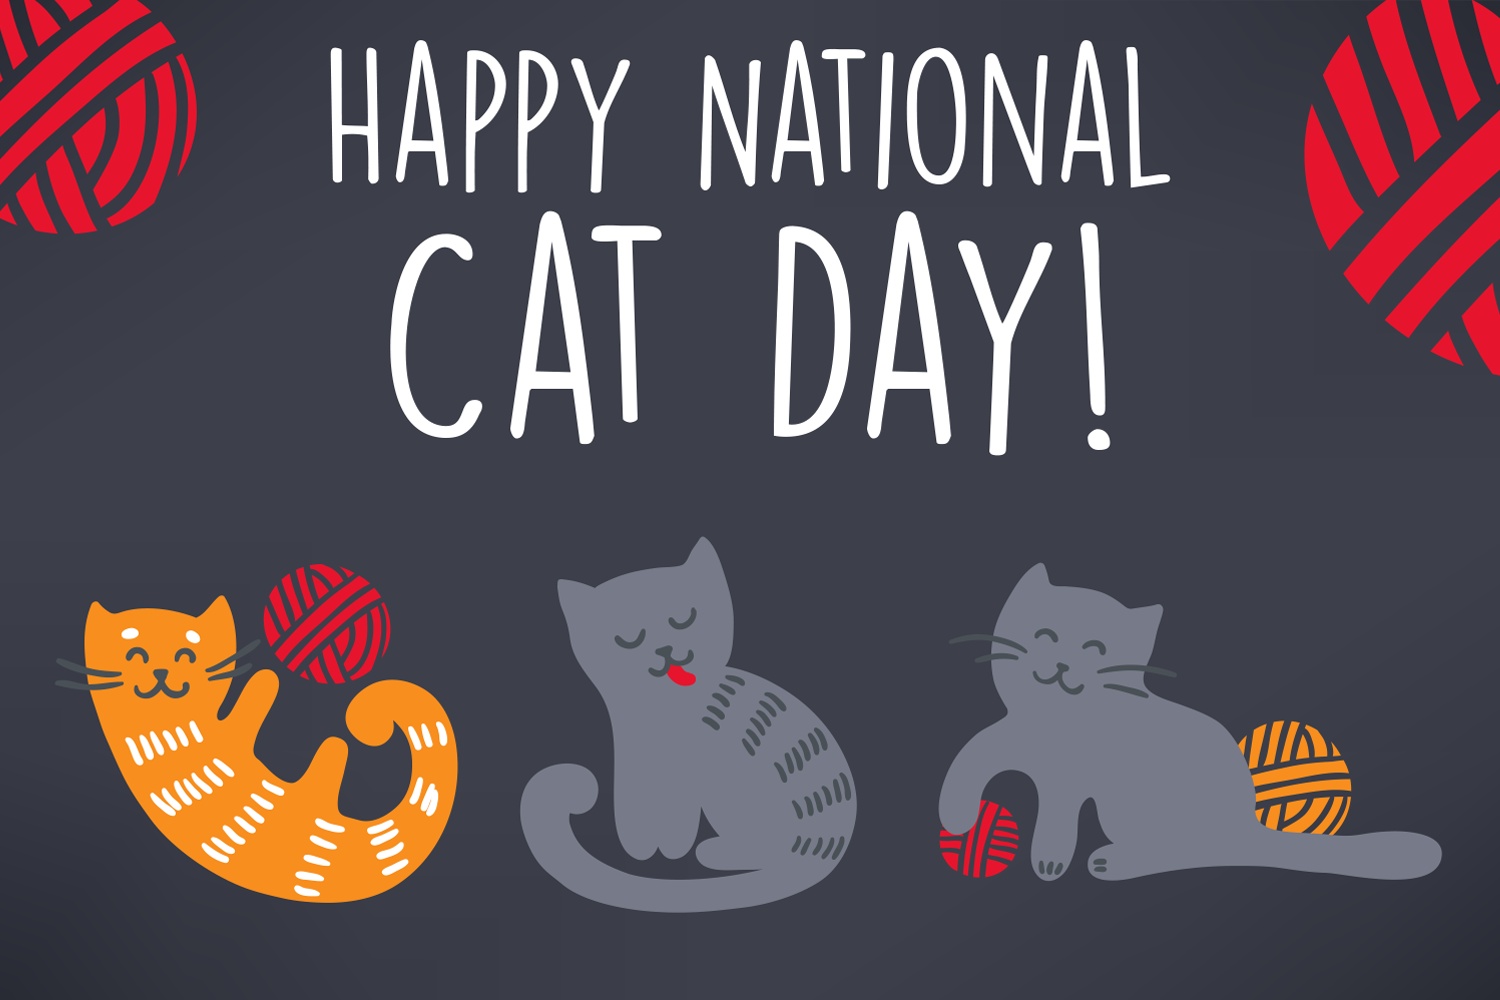 National Cat Day Wishes